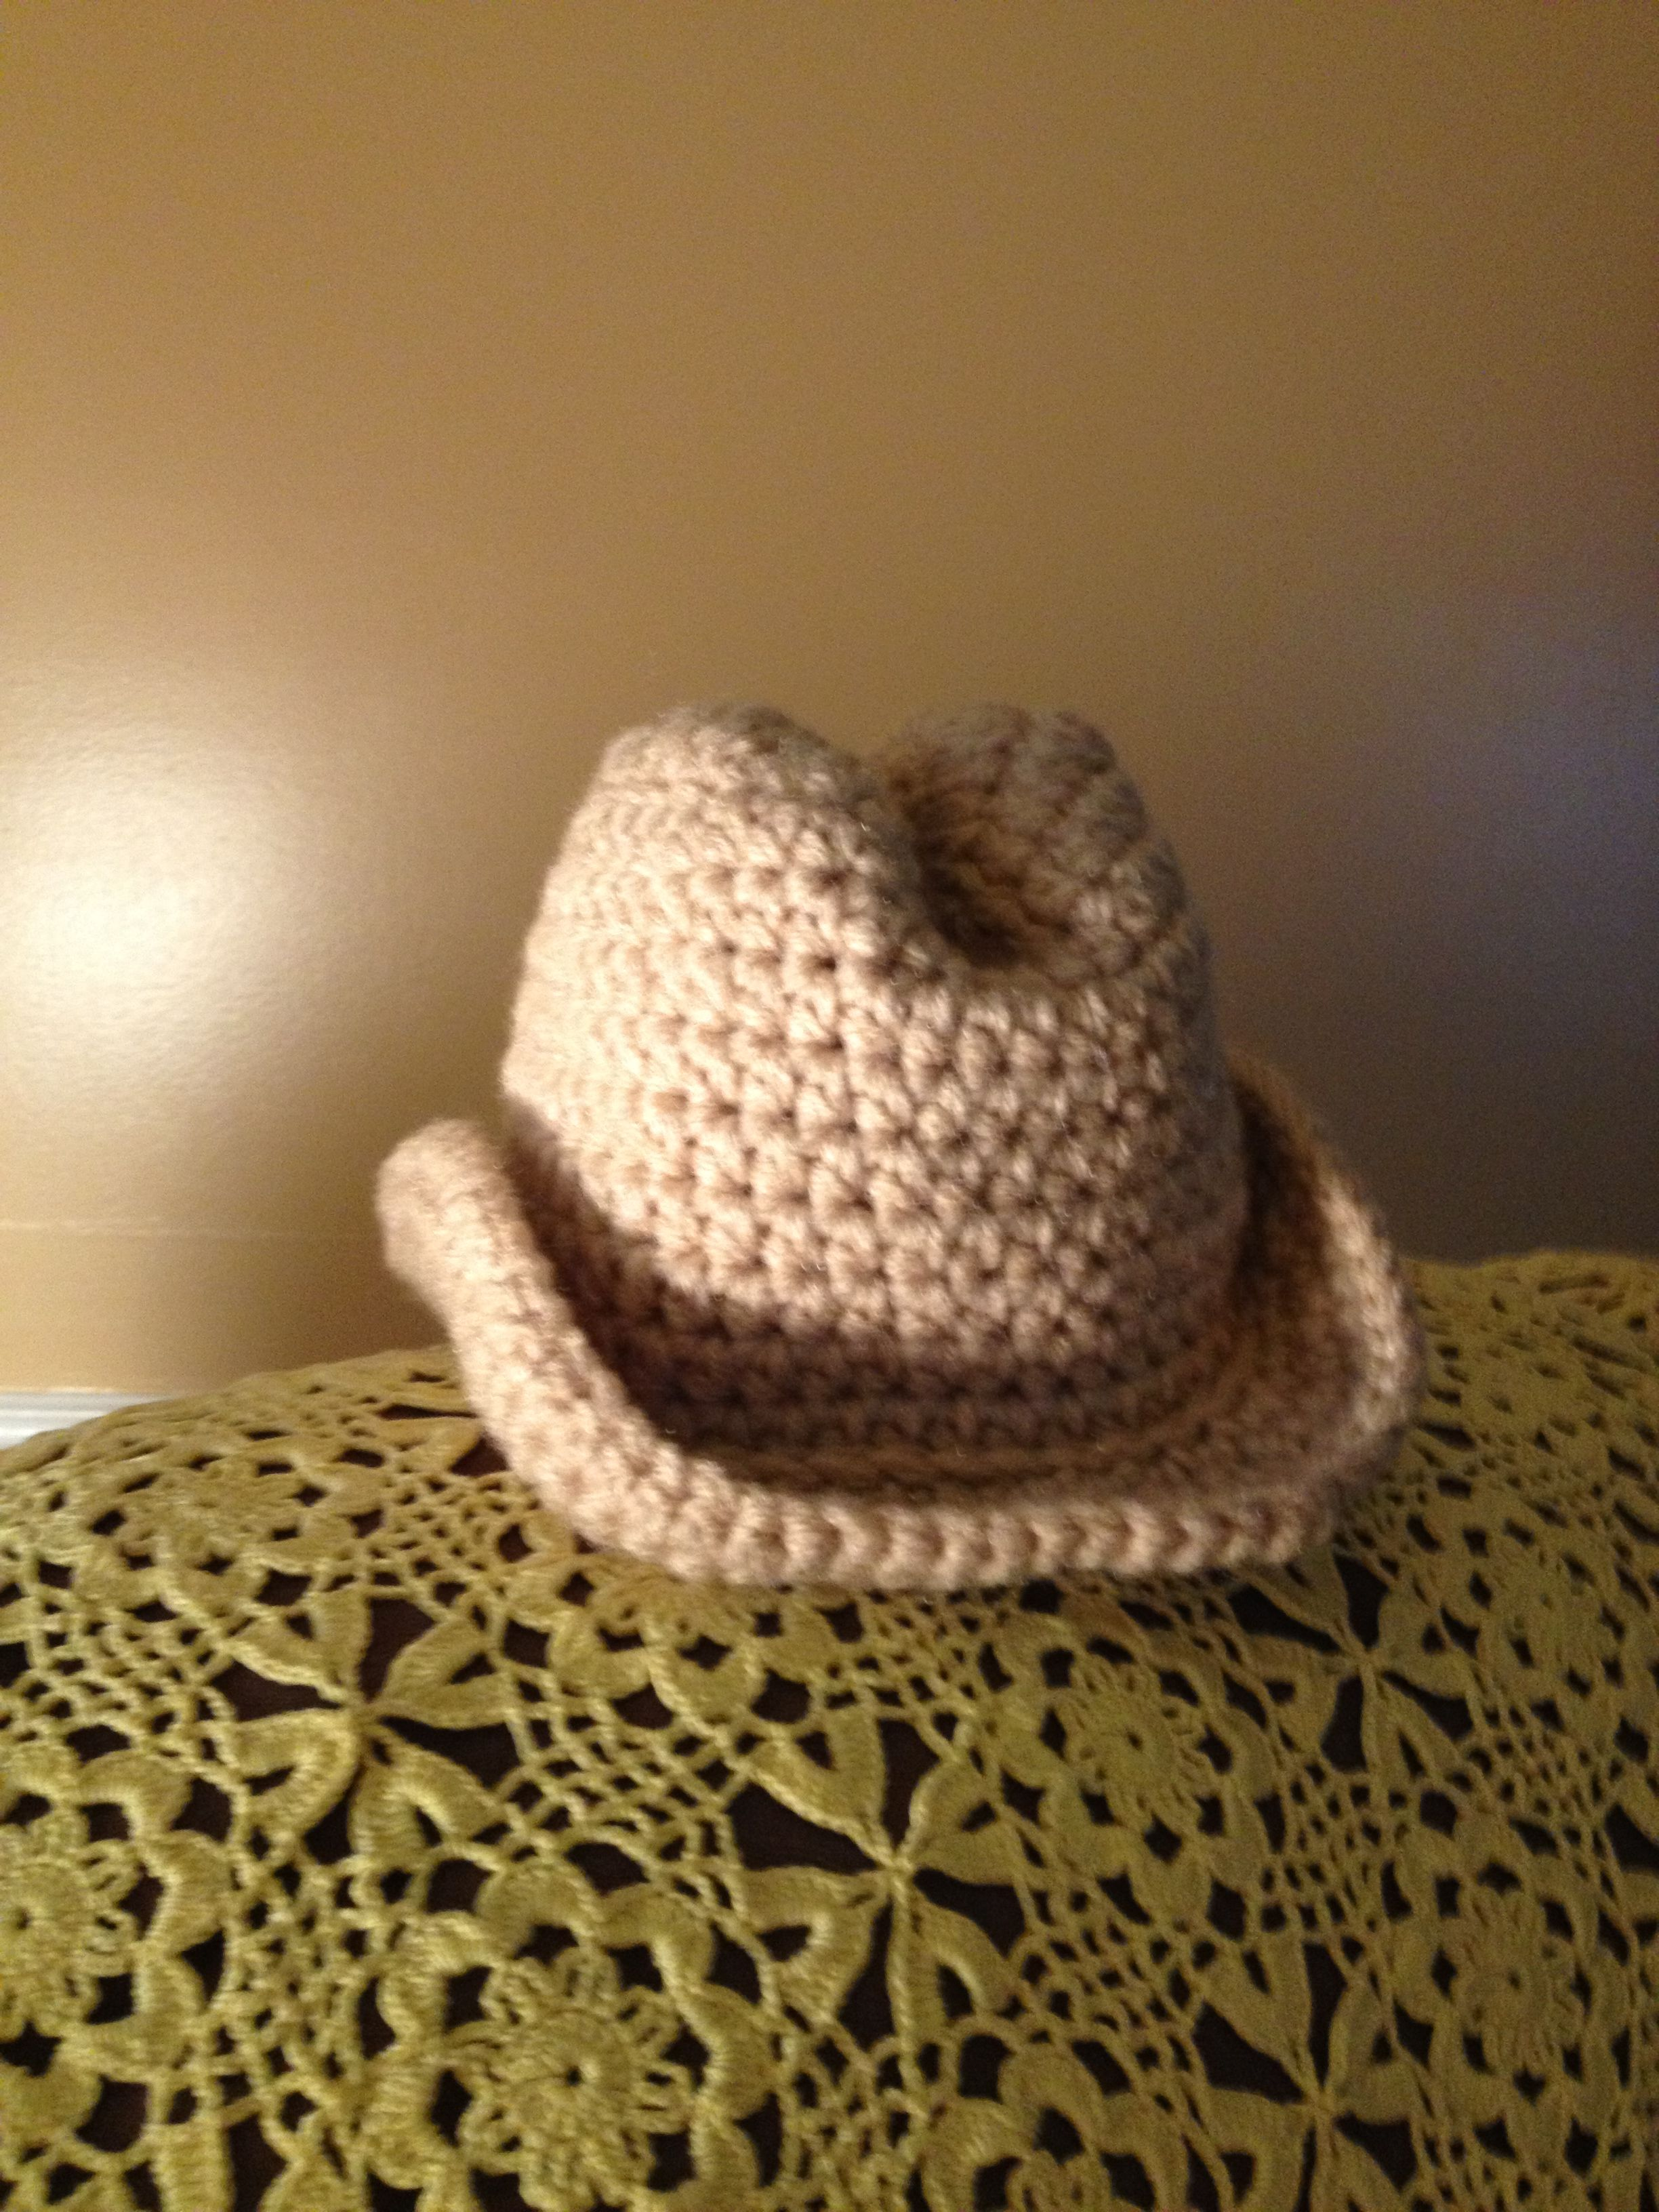 Crochet cowboy hat. Pattern: The Lovely Crow | Crochet world ...